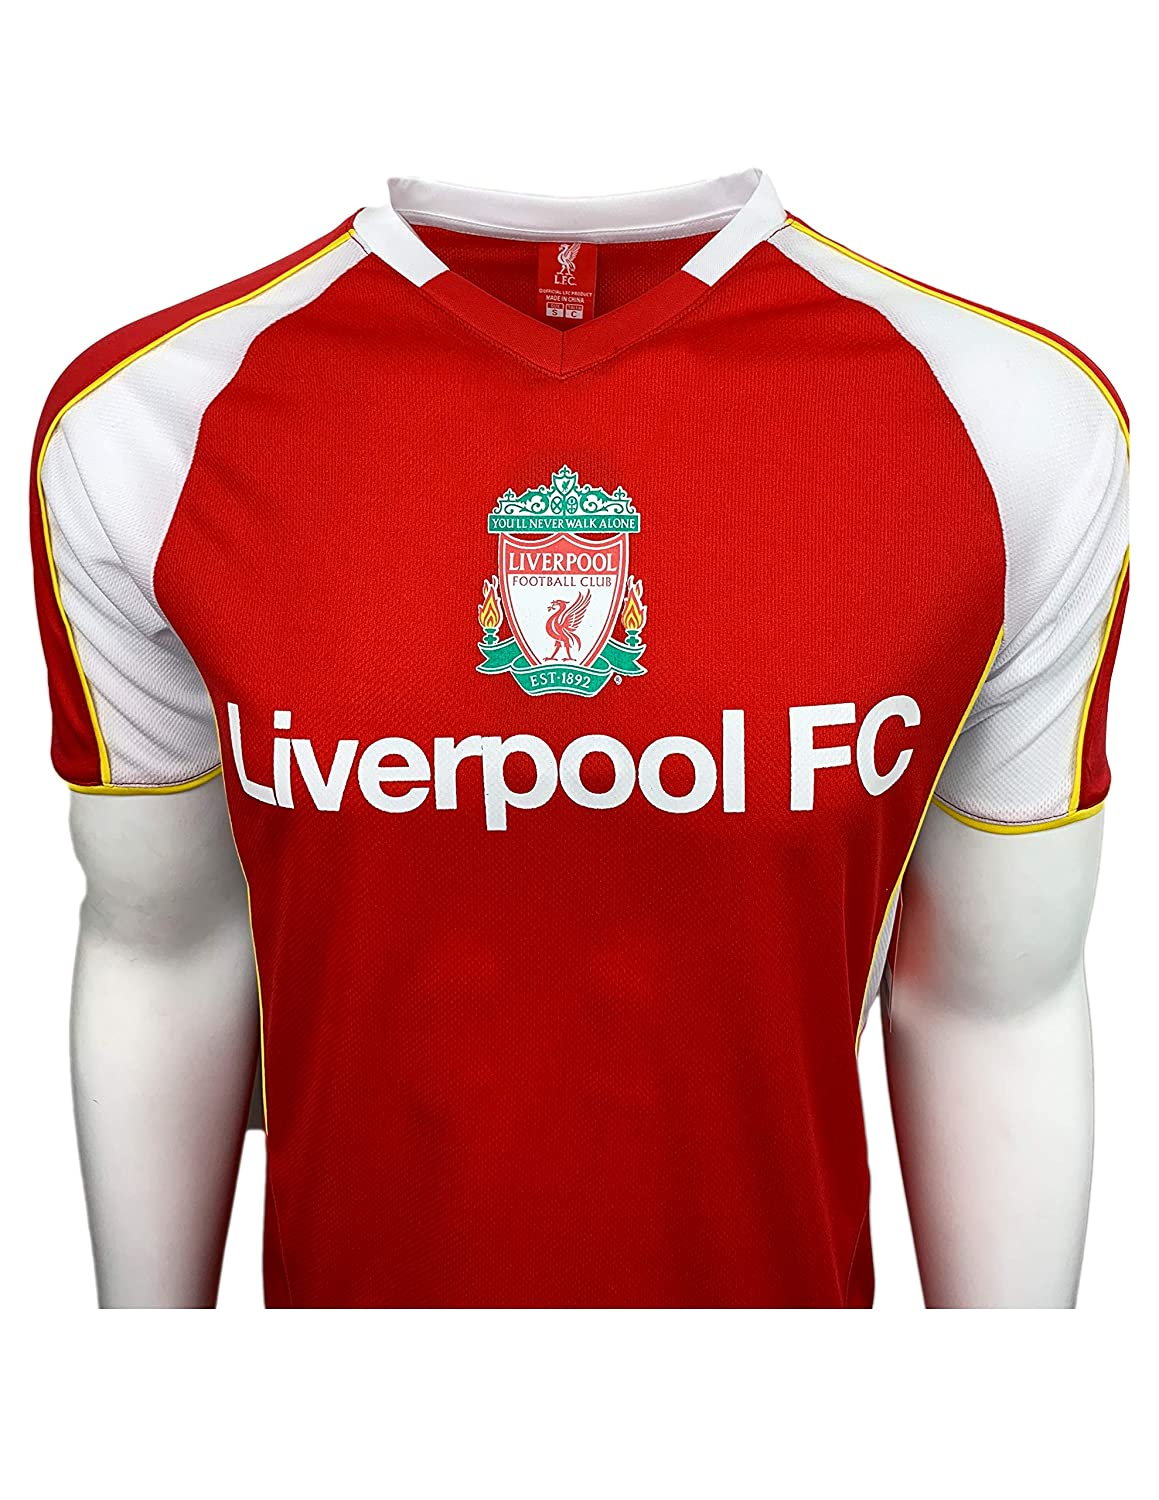 official photos 73ffc 54980 Liverpool FC Training Jersey for Kids and Adults, Officially Licensed  Training Performance Jersey, Shirt